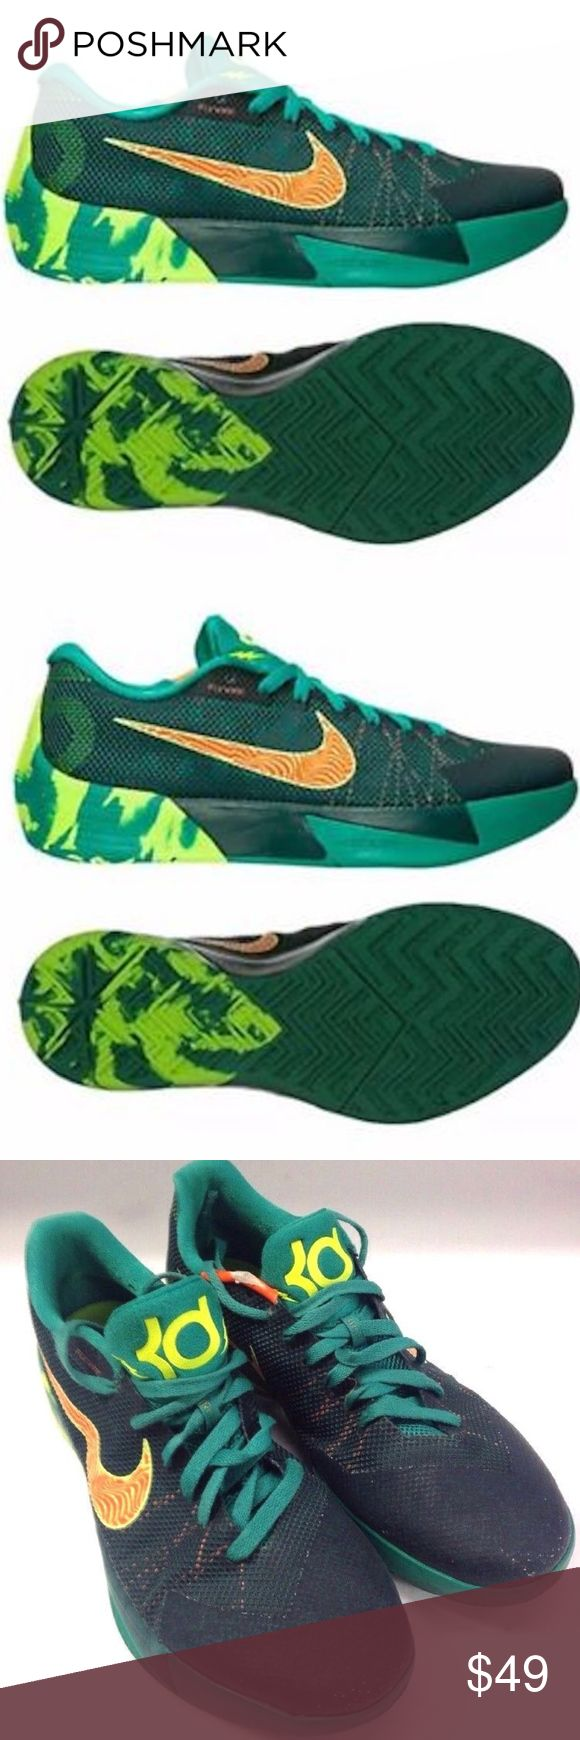 NIKE KD TREY 5 II KEVIN DURANT 653657-378 SHOES Nike KD Trey 5 II  Kevin Durant  ATHLETIC  SHOES MODEL #653657-378  MEN SIZE 11 US  USED CONDITION, PLENTY OF LIFE LEFT. MINOR DAMAGE ON THE TRIM PICTURED  SEE PICTURES FOR DETAILS Nike Shoes Sneakers